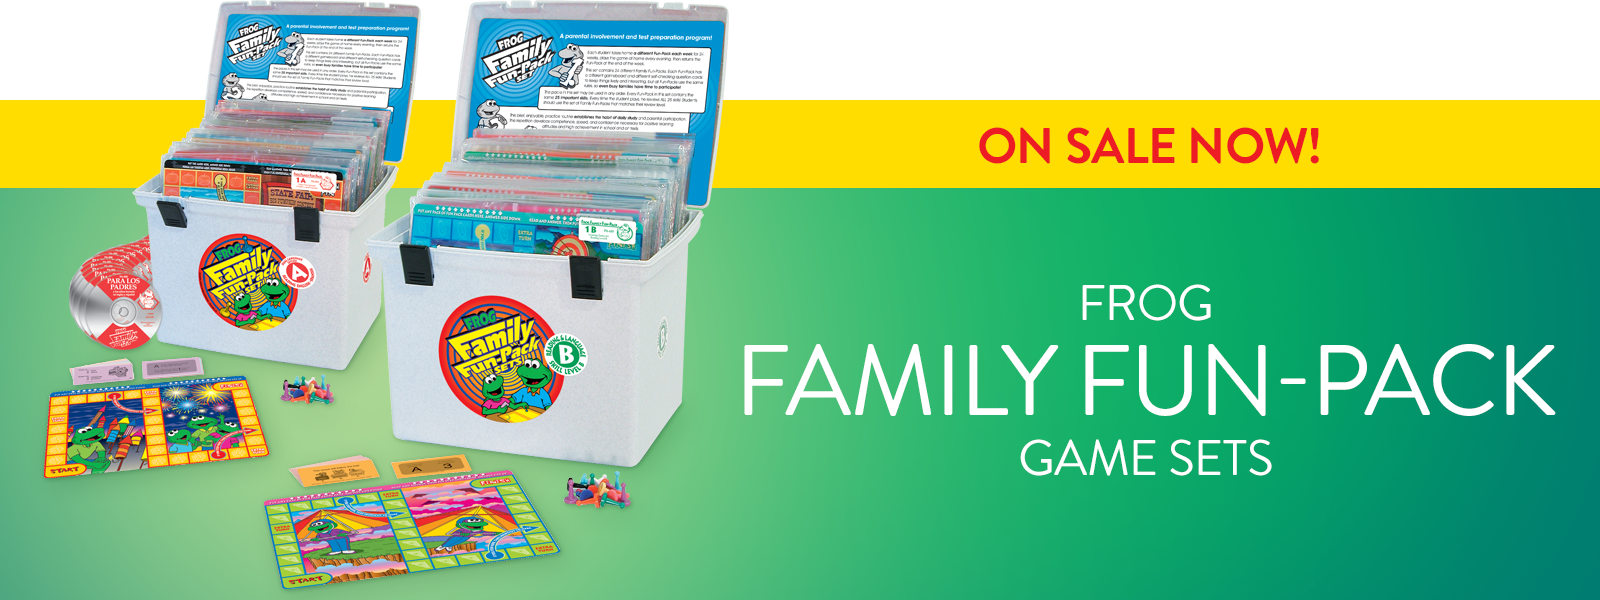 frog-family-fun-packs-on-sale-now.png